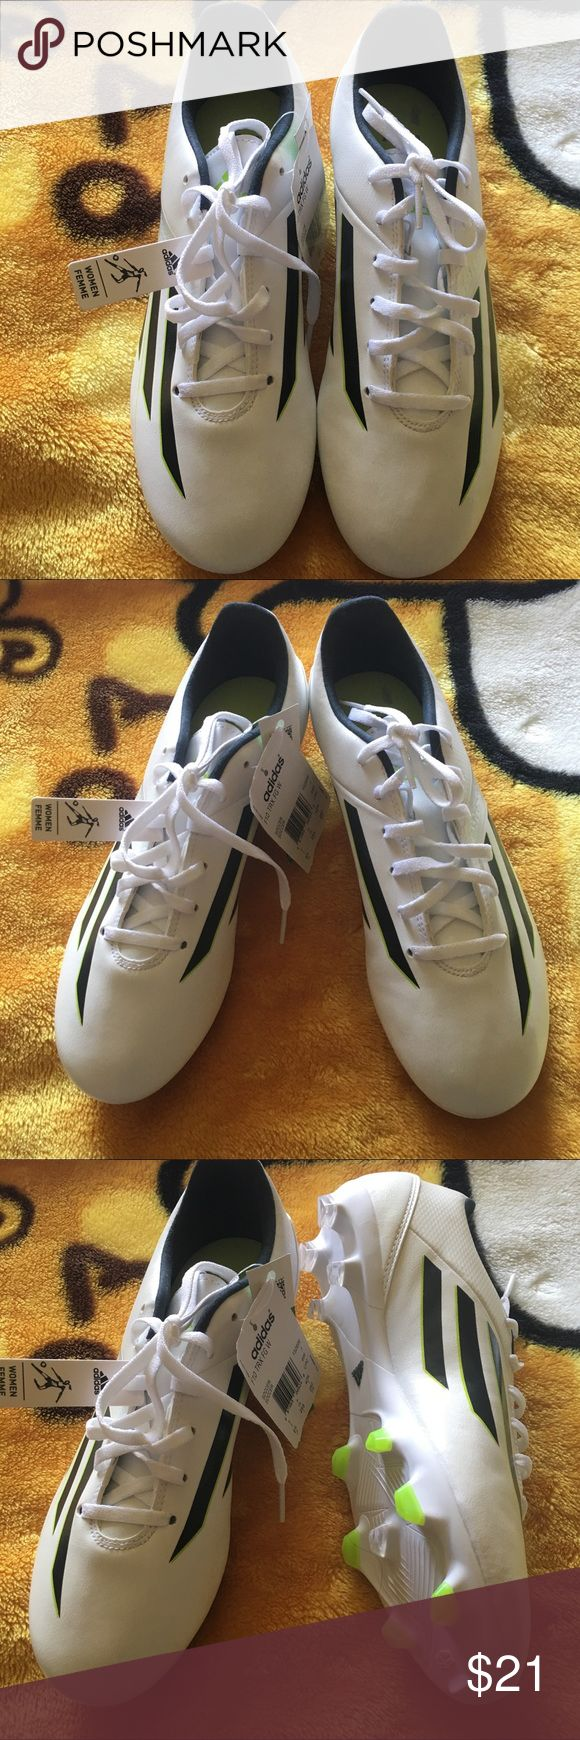 BNWT Women's adidas soccer cleats shoes size 8.5 BNWT Women's adidas soccer cleats shoes size 8.5 adidas Shoes Athletic Shoes